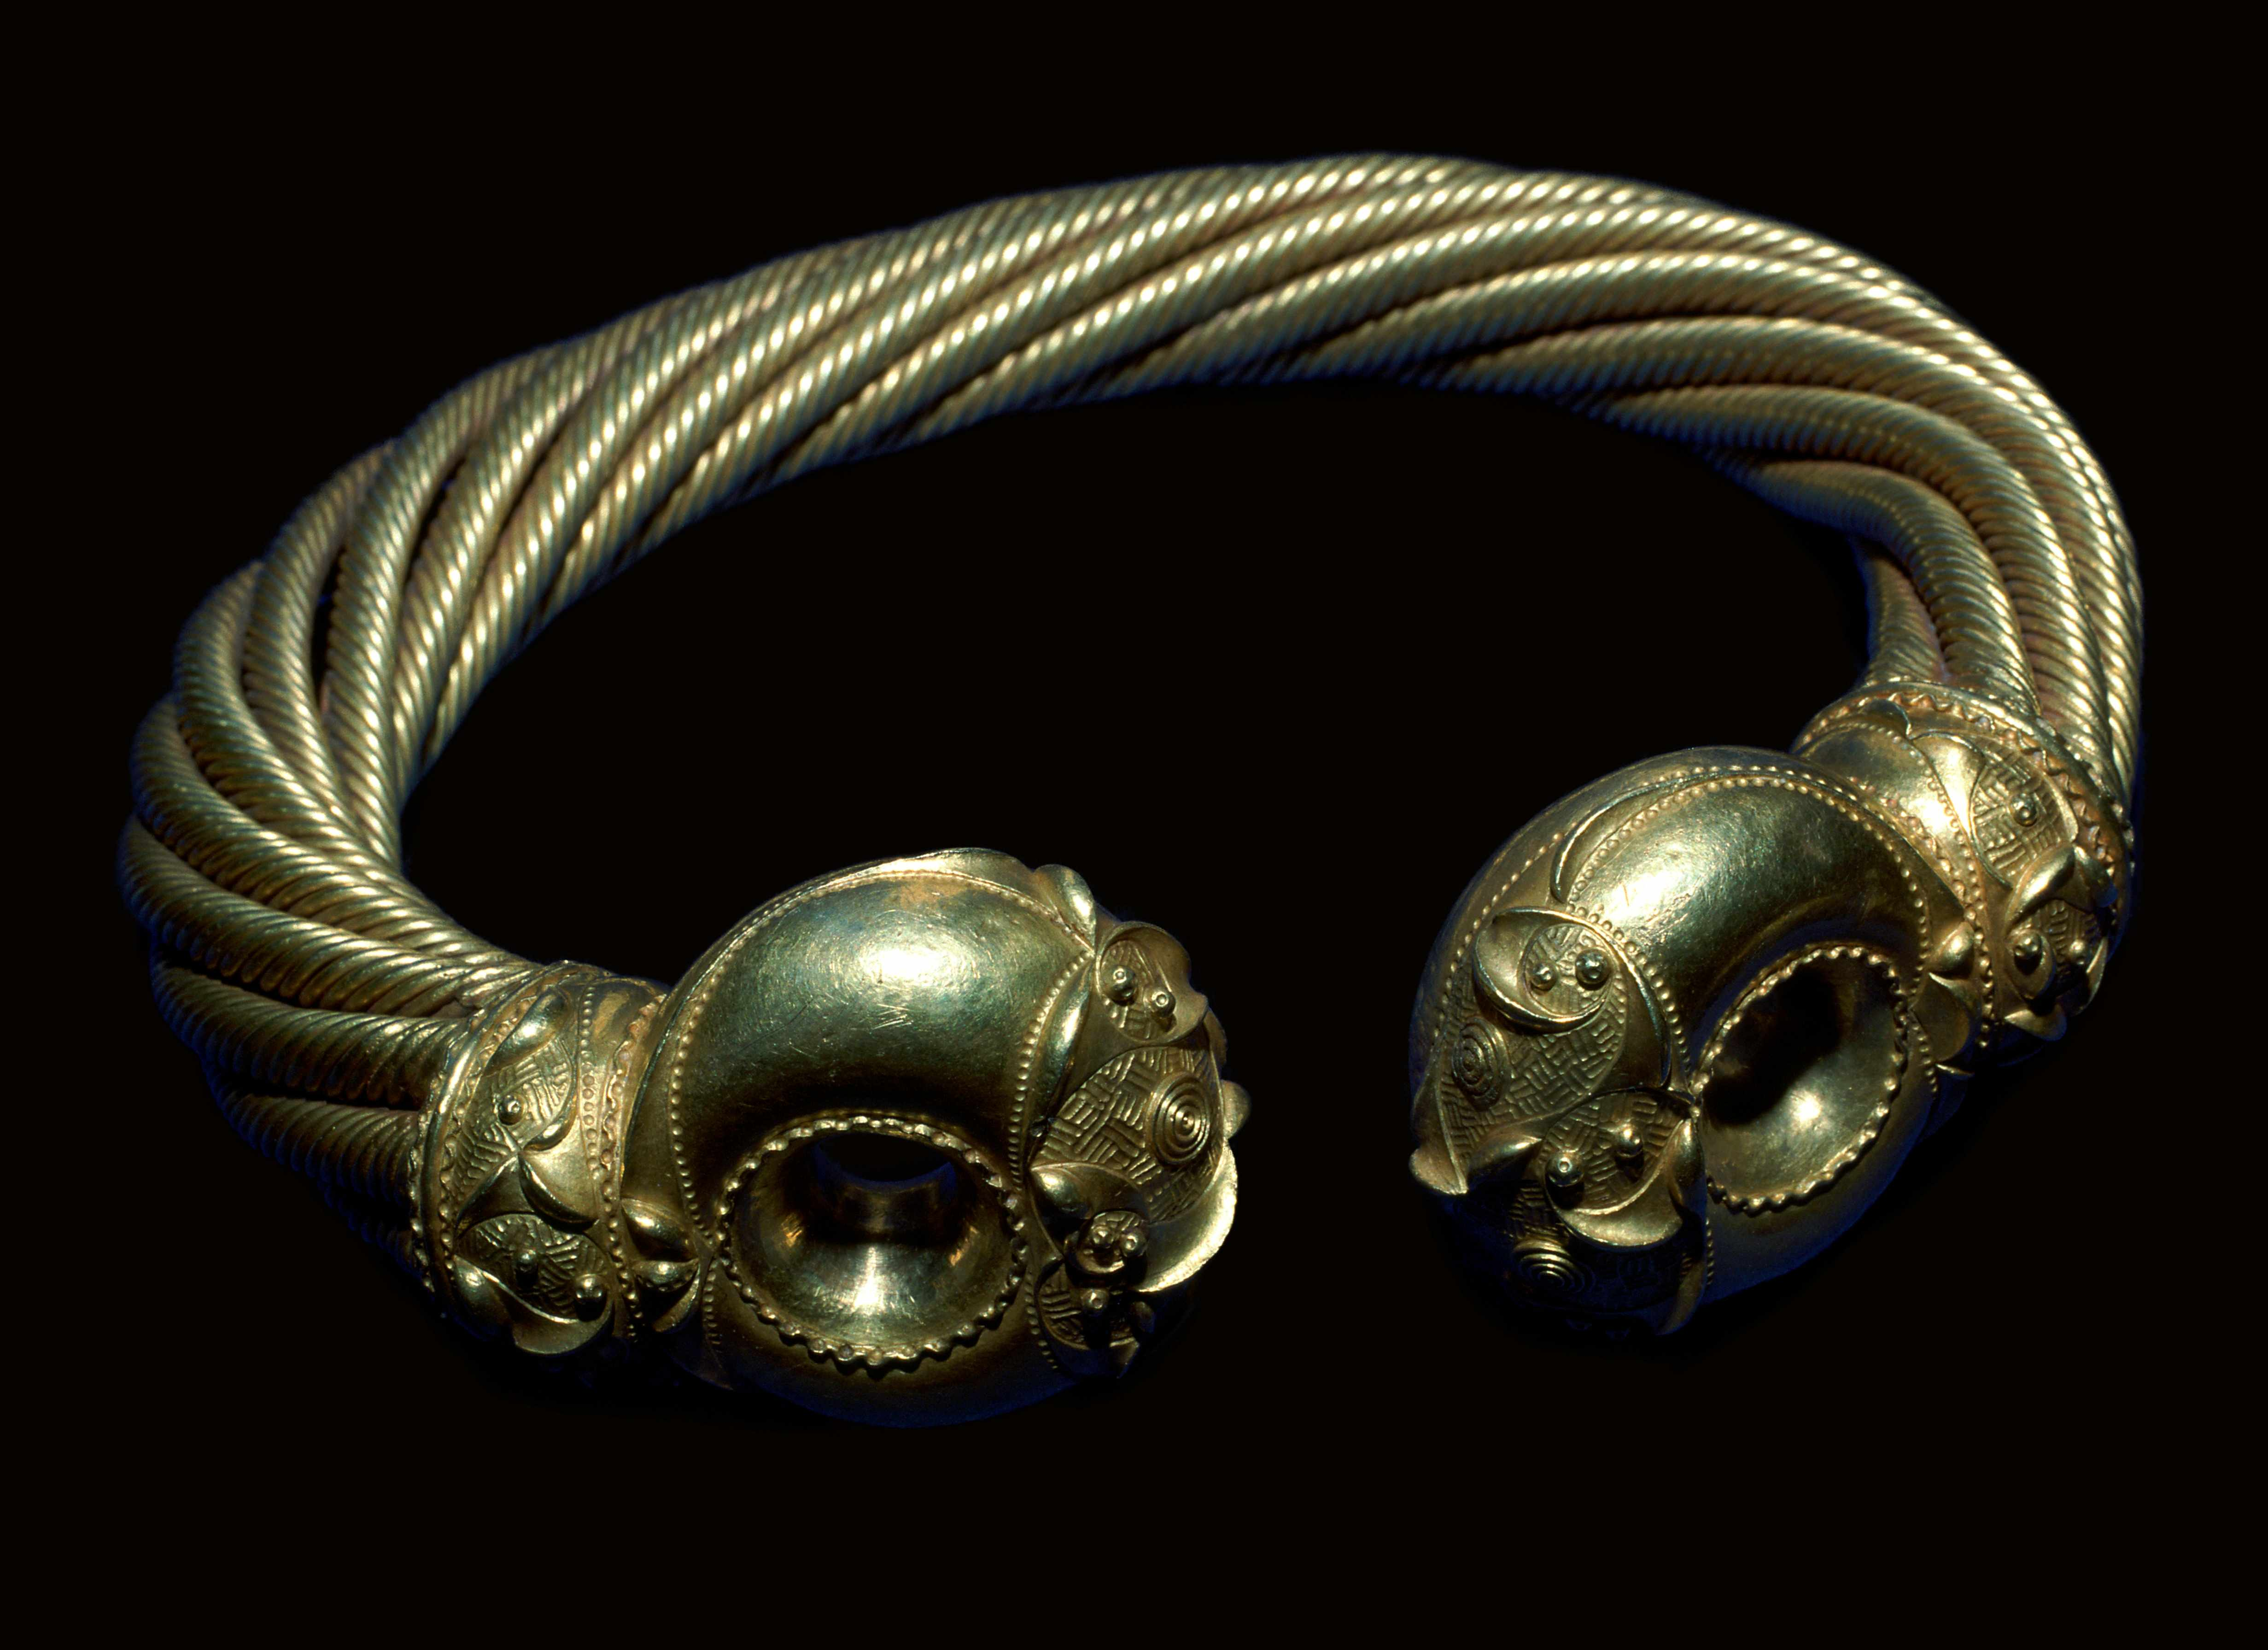 Golden torc from the Iron age